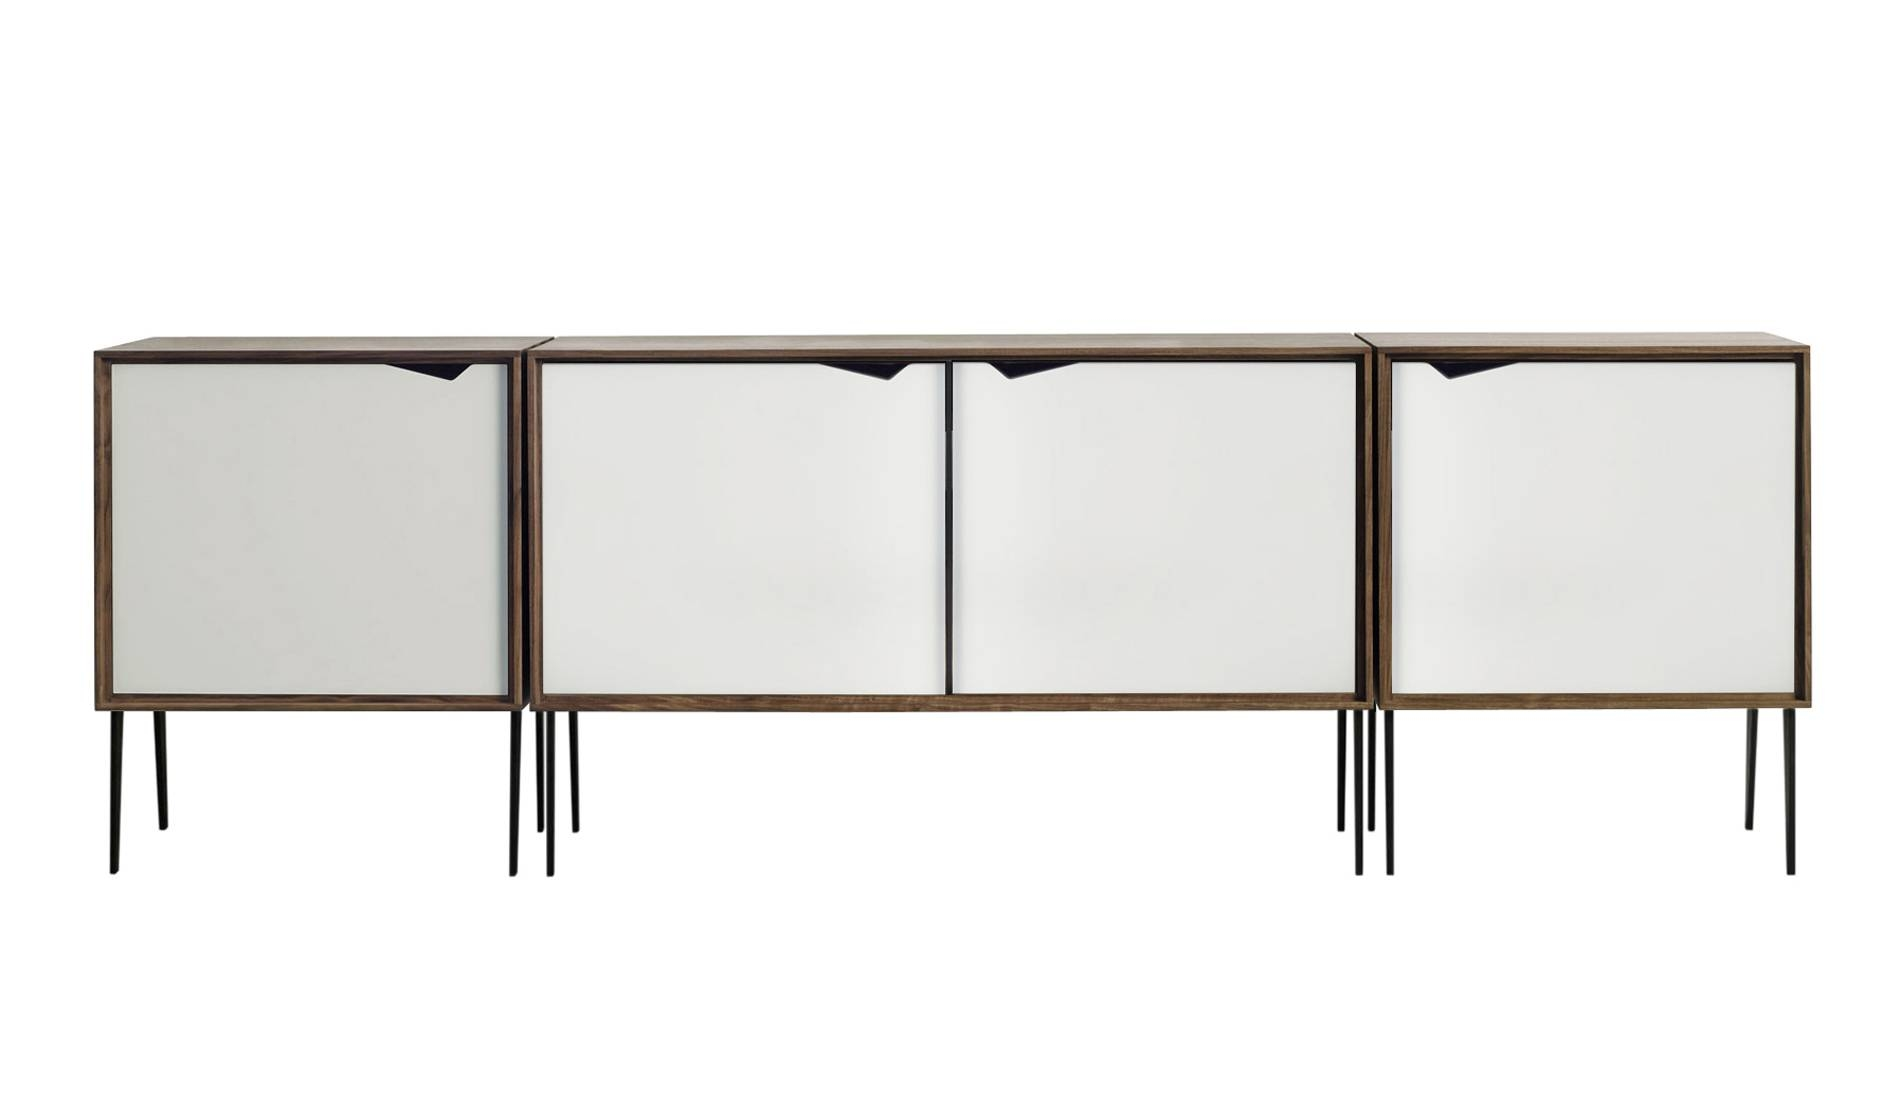 Andersen S2 Walnut / White Sideboard | Dopo Domani with Walnut and Black Sideboards (Image 3 of 30)